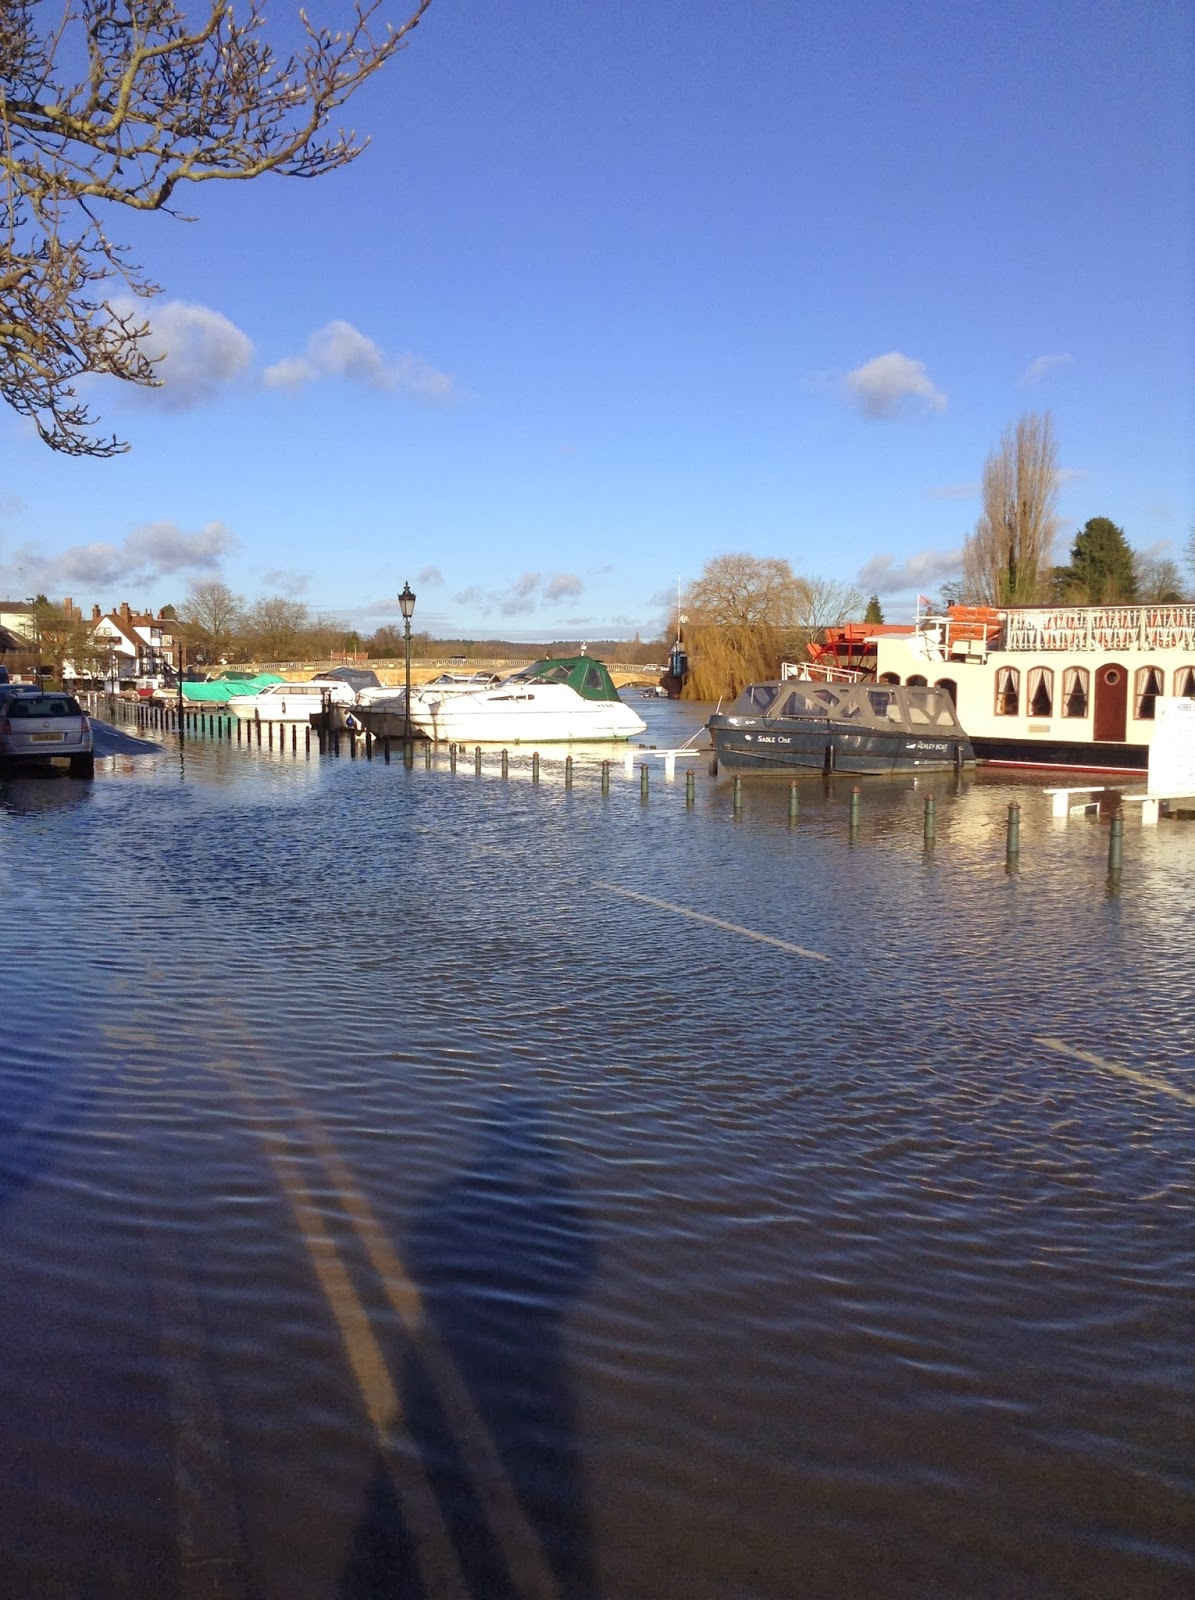 Flooding in Henley-on-Thames, Thameside